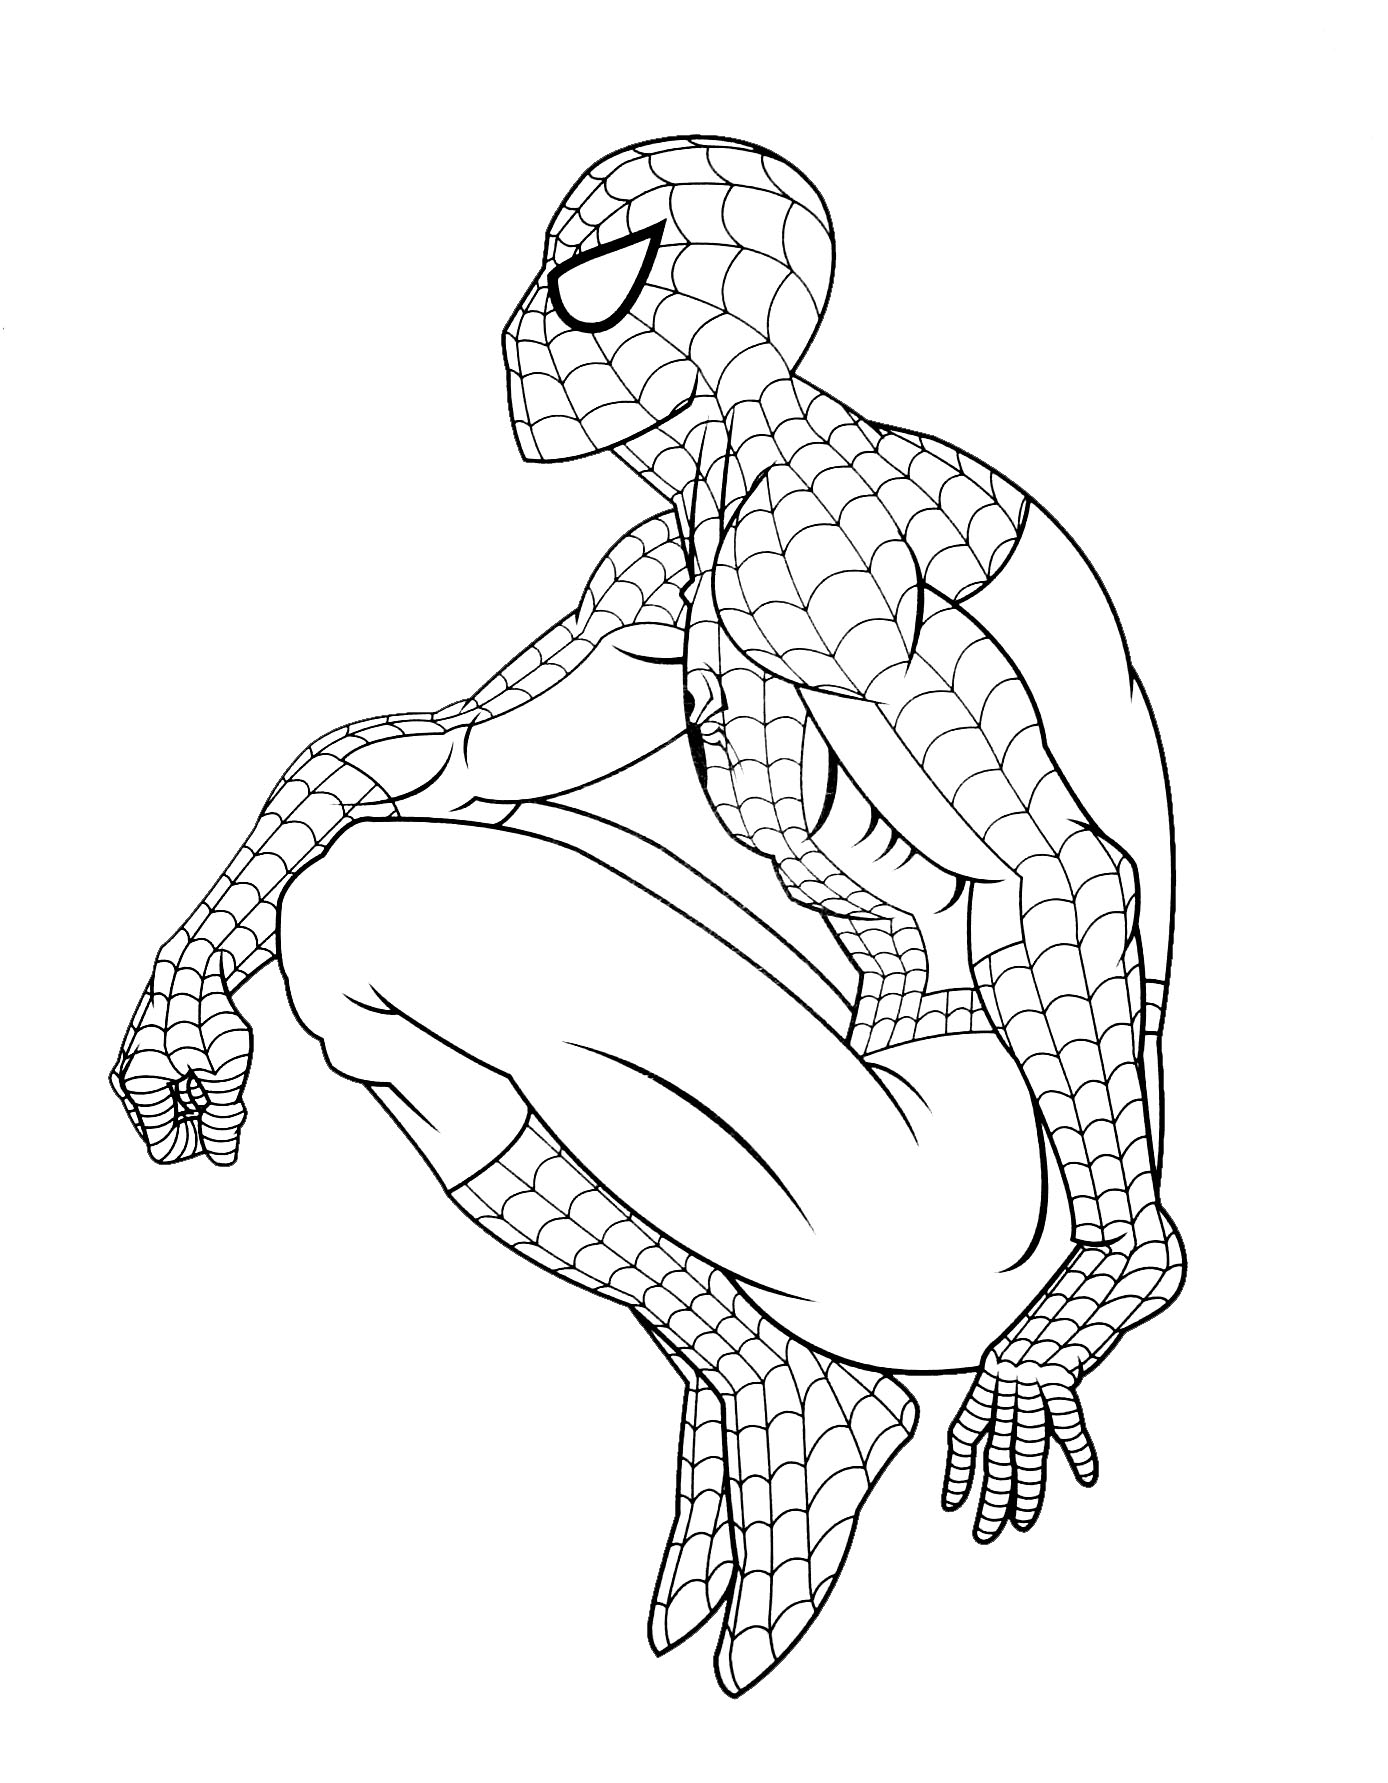 Spiderman gratuit 4 coloriage spiderman coloriages pour enfants - Coloriage spiderman 1 ...